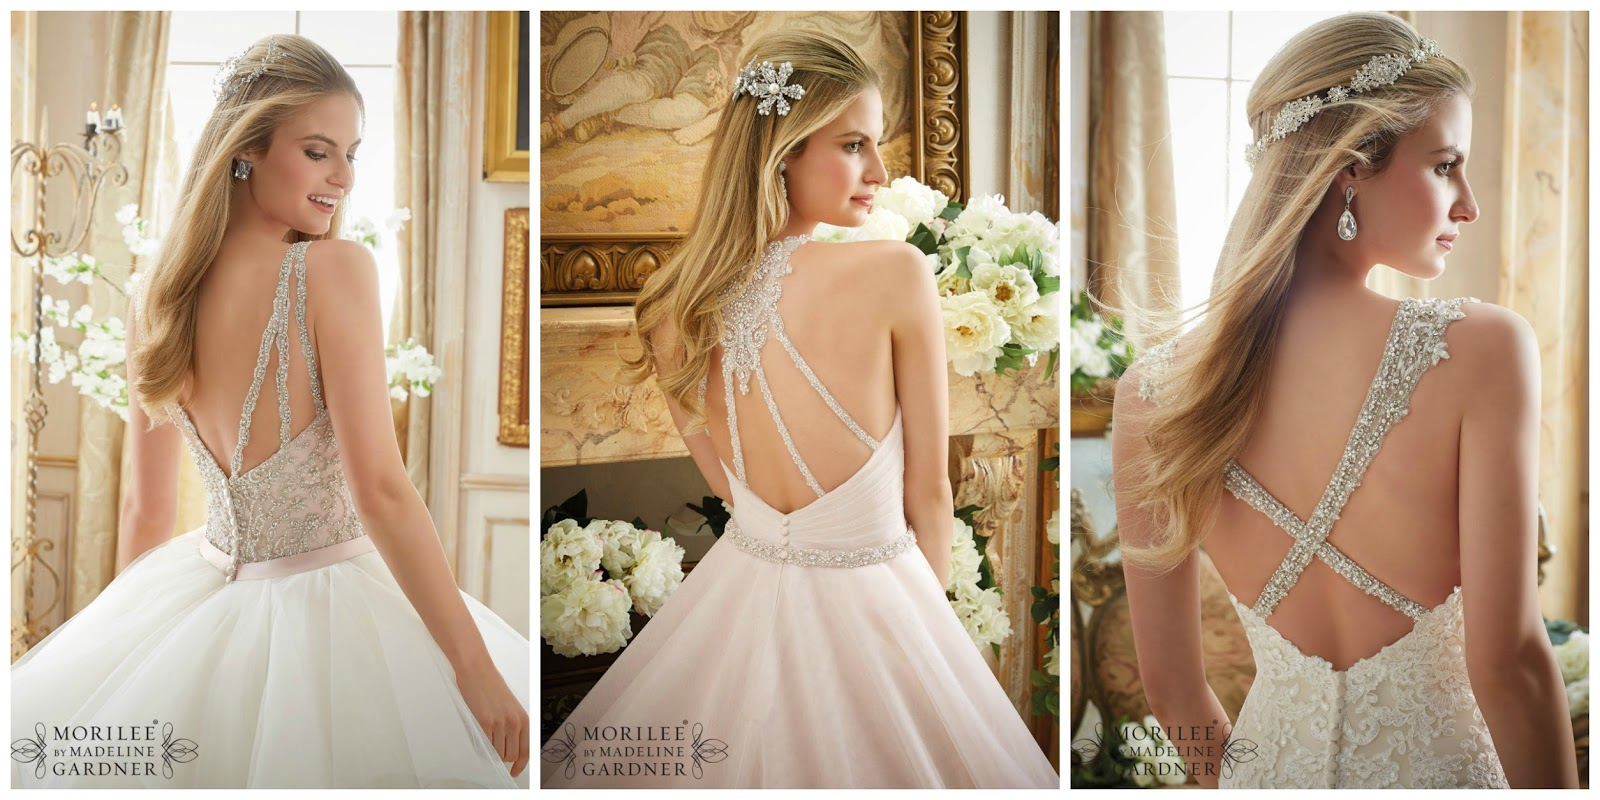 Brides of America Online Store: Bridal Gowns with Beautiful Backs